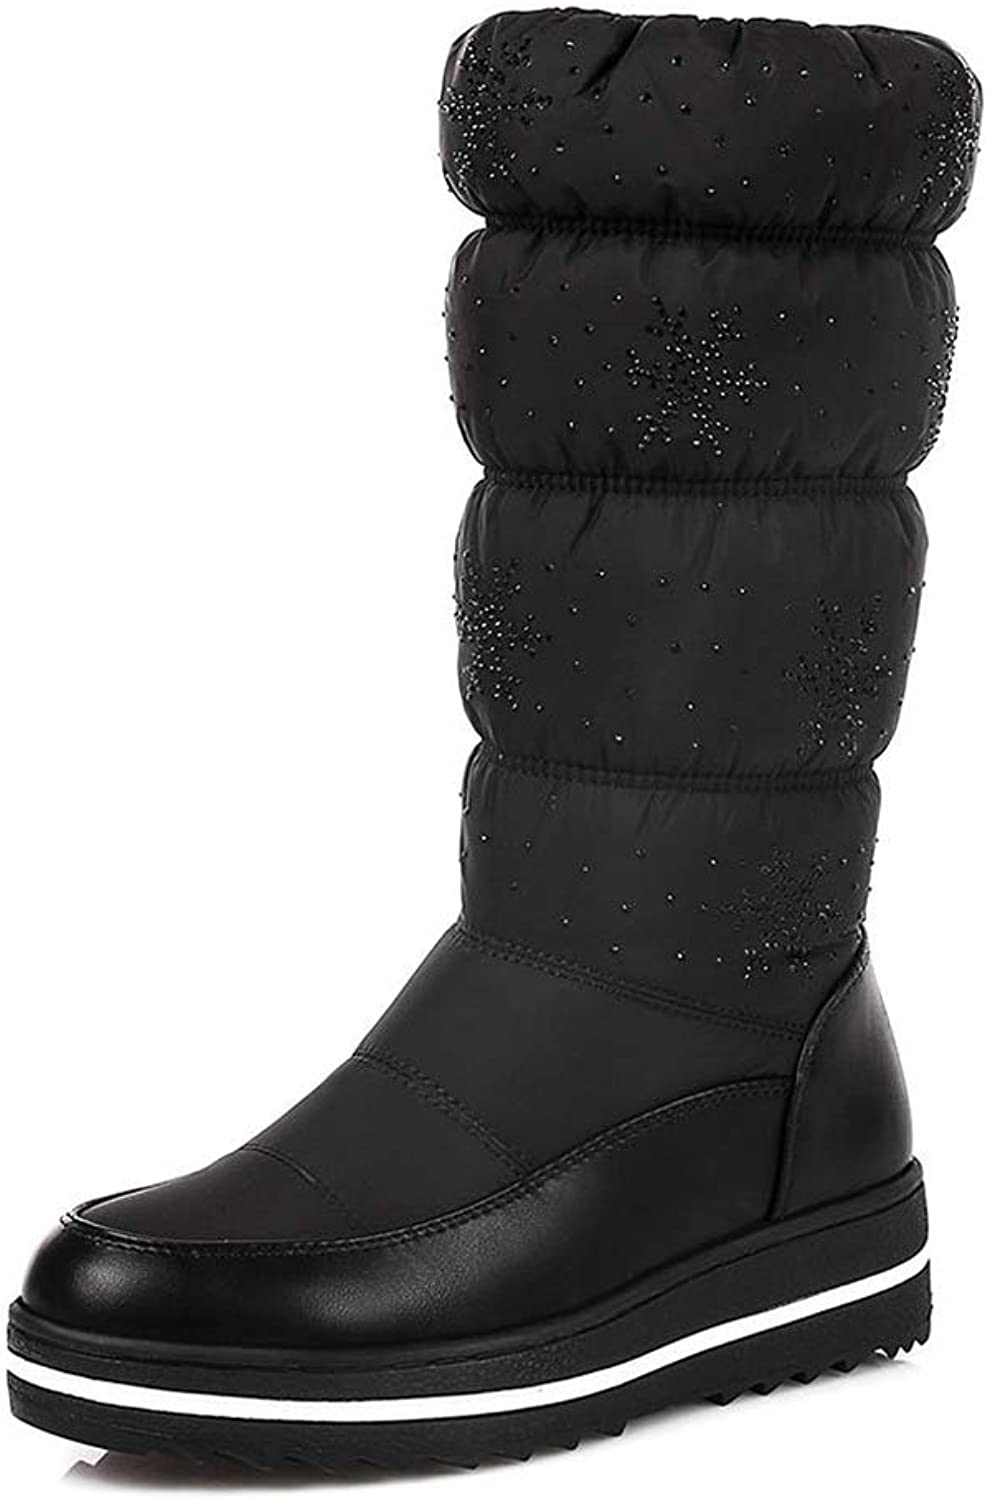 Elegant Winter Snow Boots for Woman Add Plush Warm Mid Calf Waterproof Flat Low Heel Cuff shoes